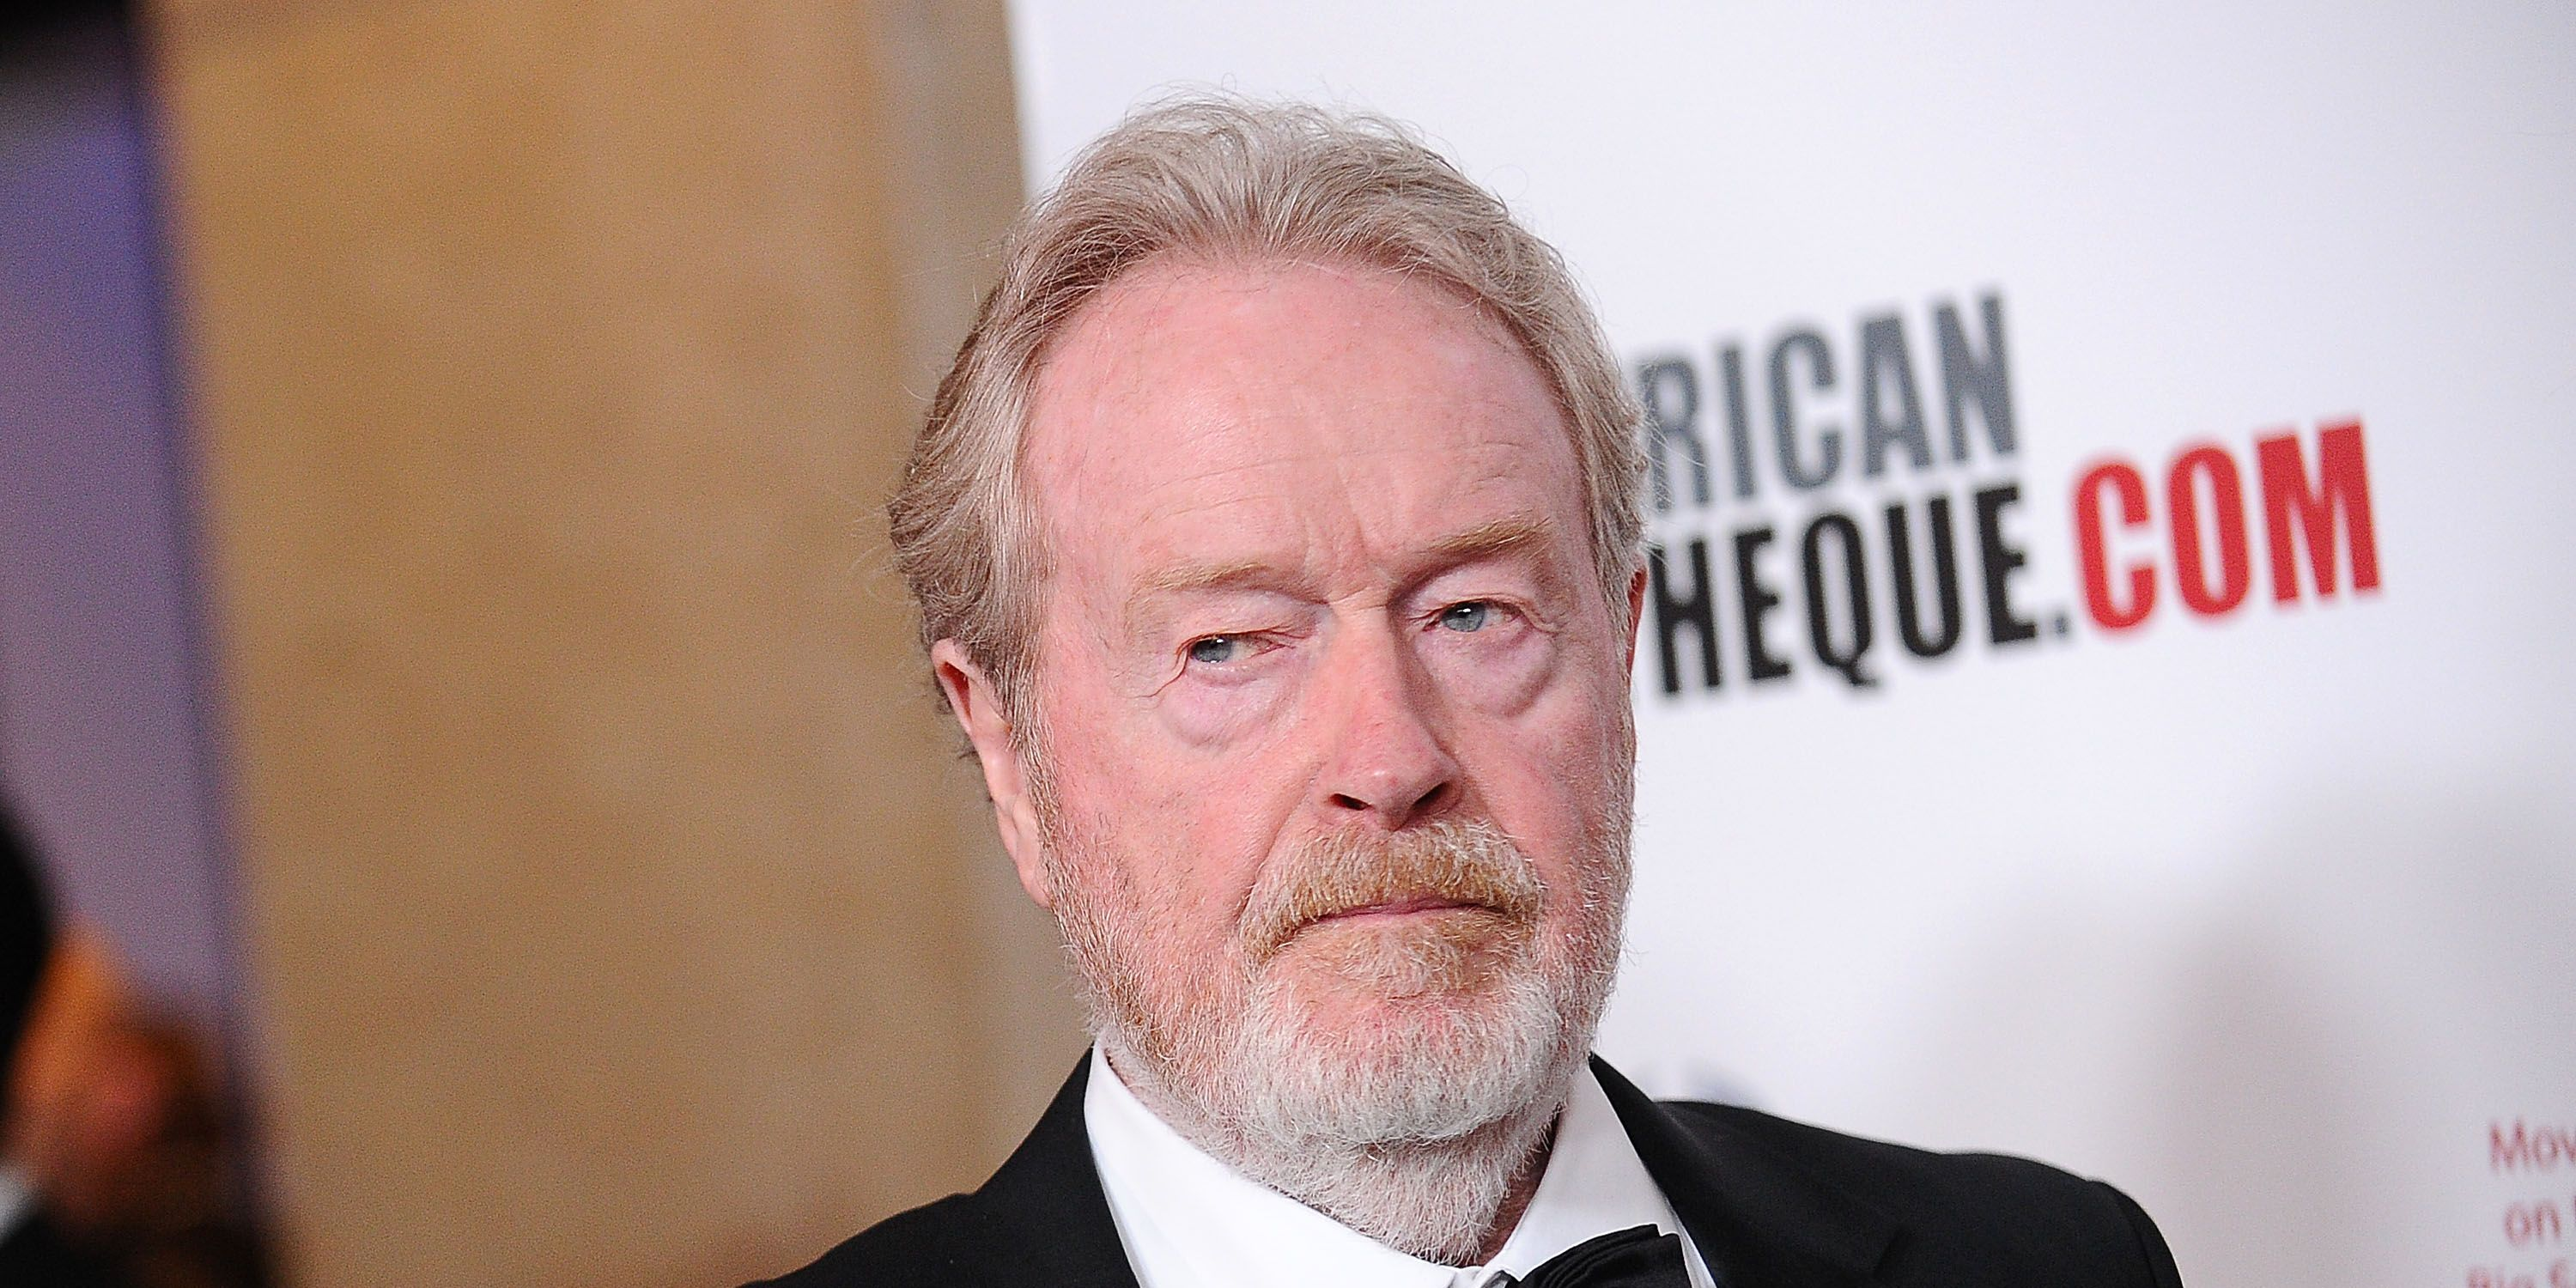 Ridley Scott attends the 30th annual American Cinematheque Awards gala